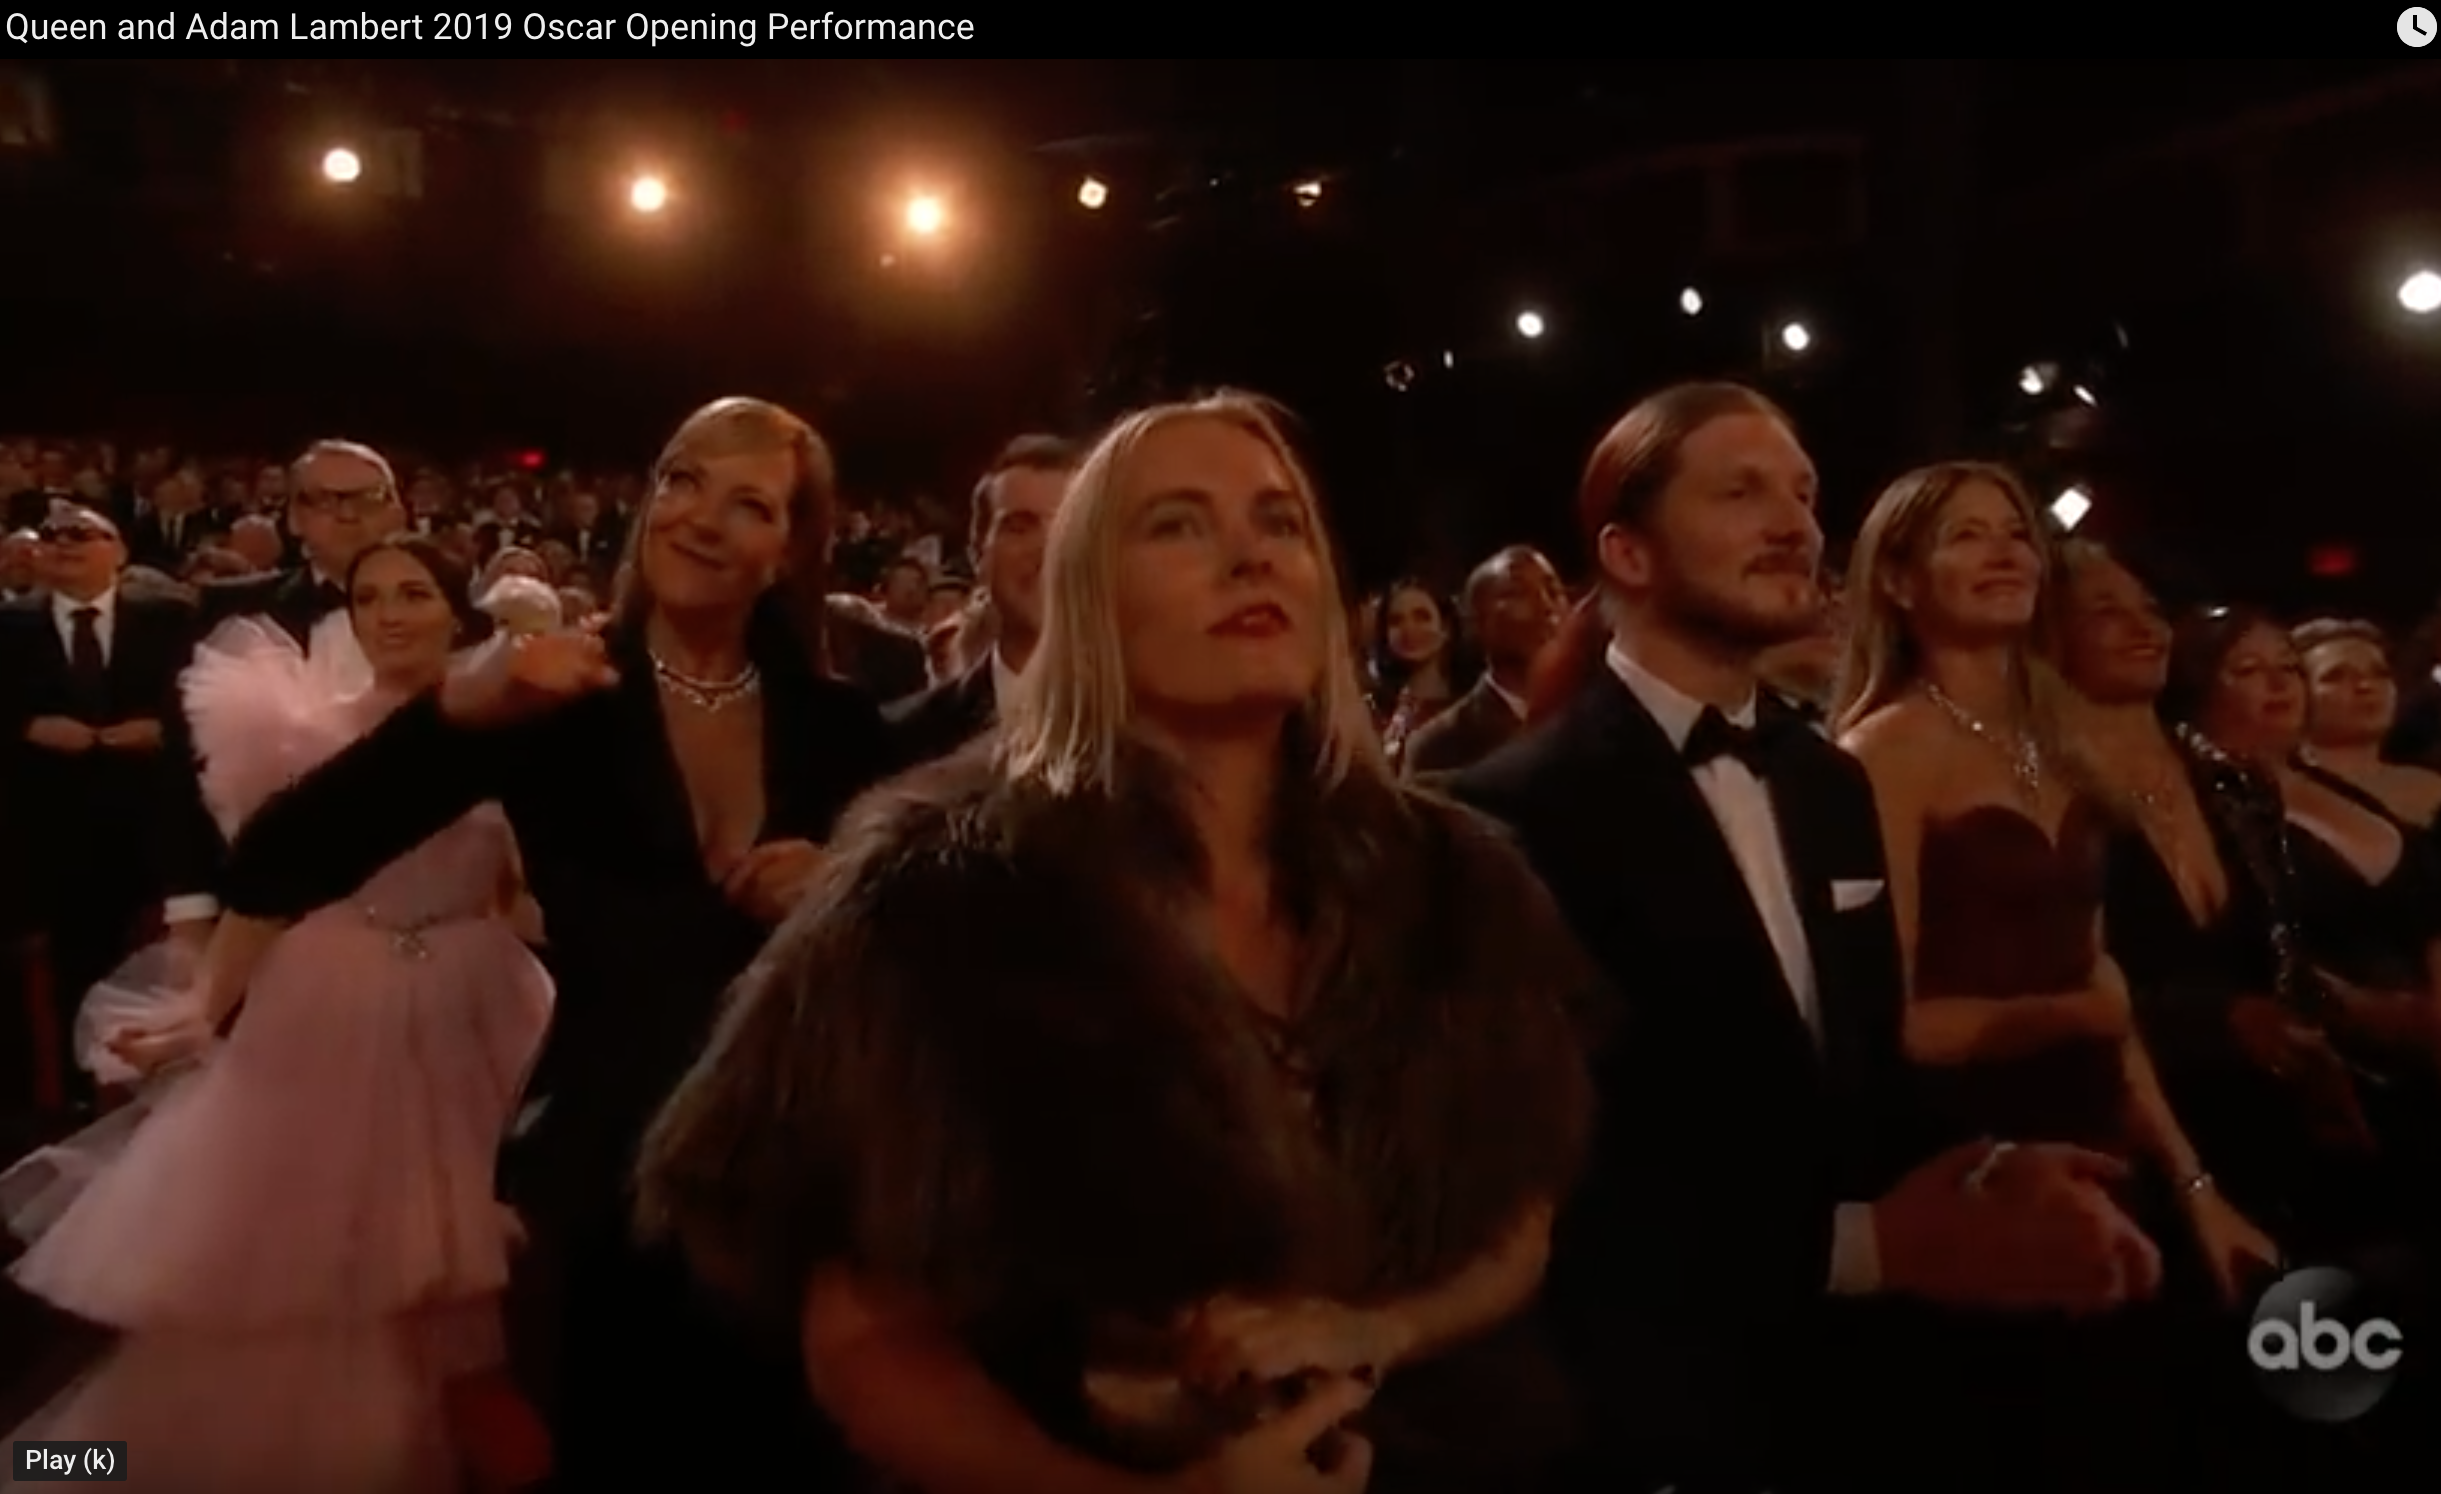 Queen Oscars opening.png